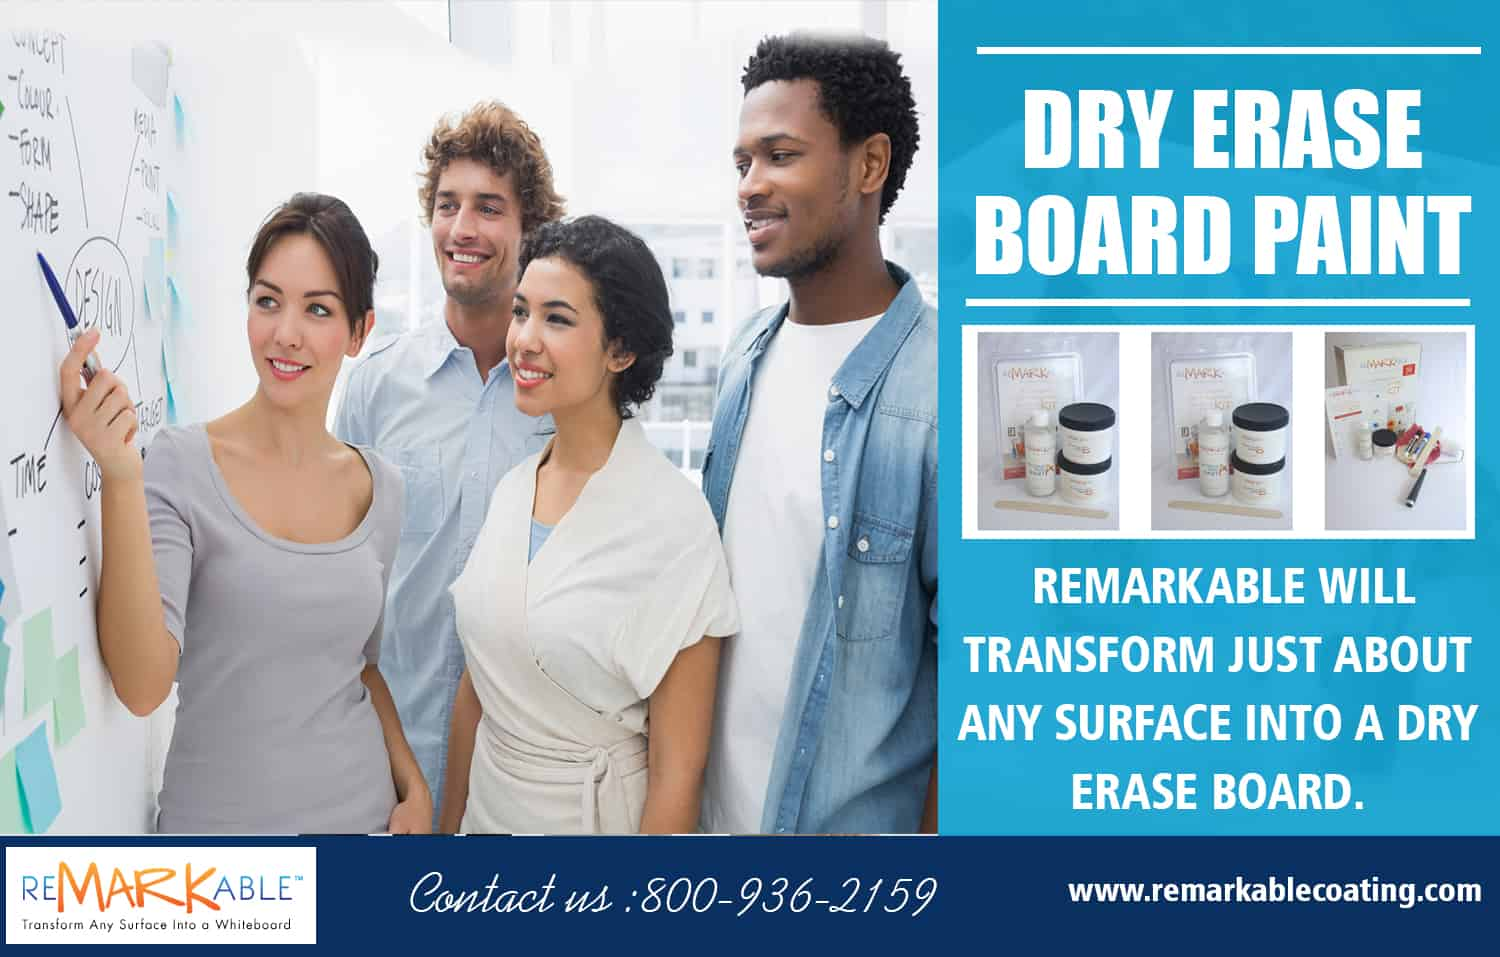 Turn A Wall Into A Whiteboard Buy Dry Erase Board Paint Near Espee Street Bakersfield Ca